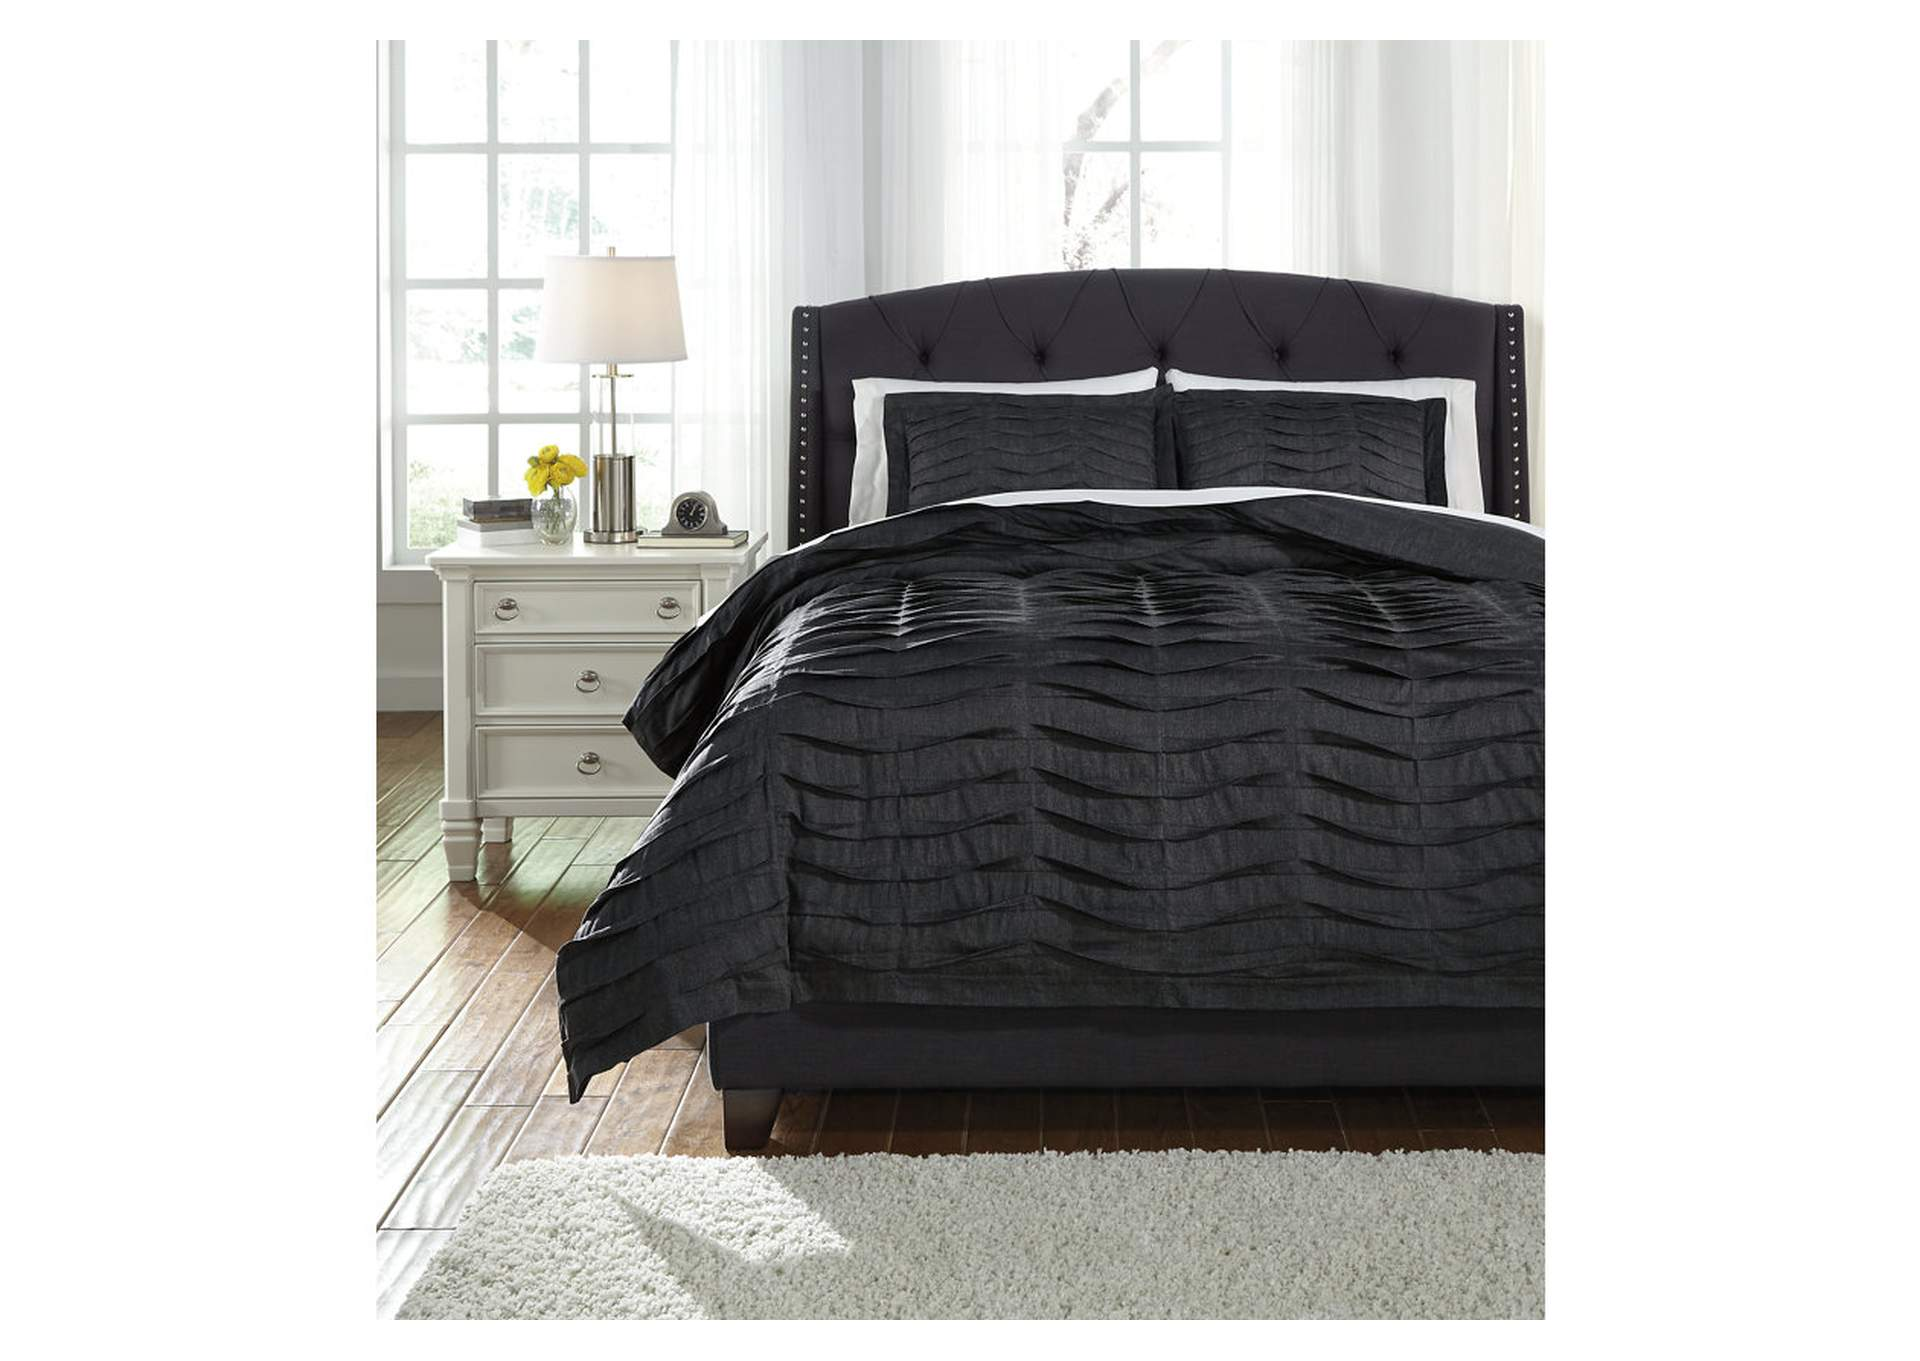 Voltos Charcoal Queen Duvet Cover Set,Direct To Consumer Express